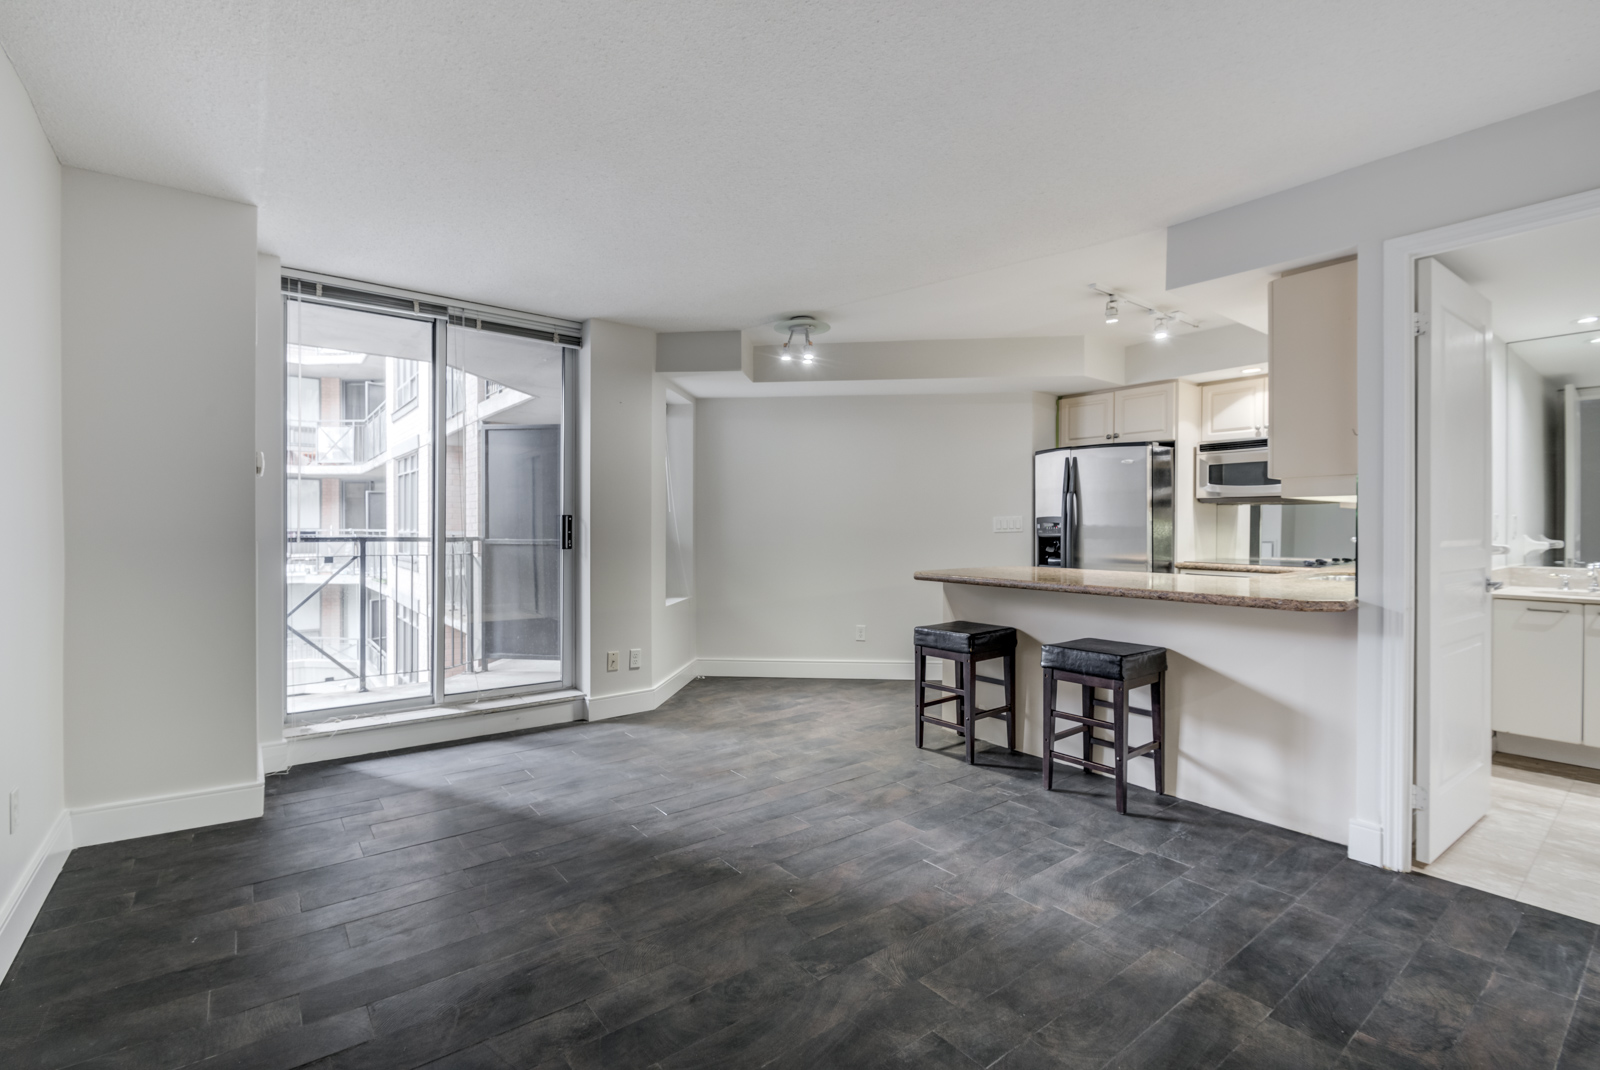 View of 140 Simcoe St E Unit 921, a small bachelor's apartment.